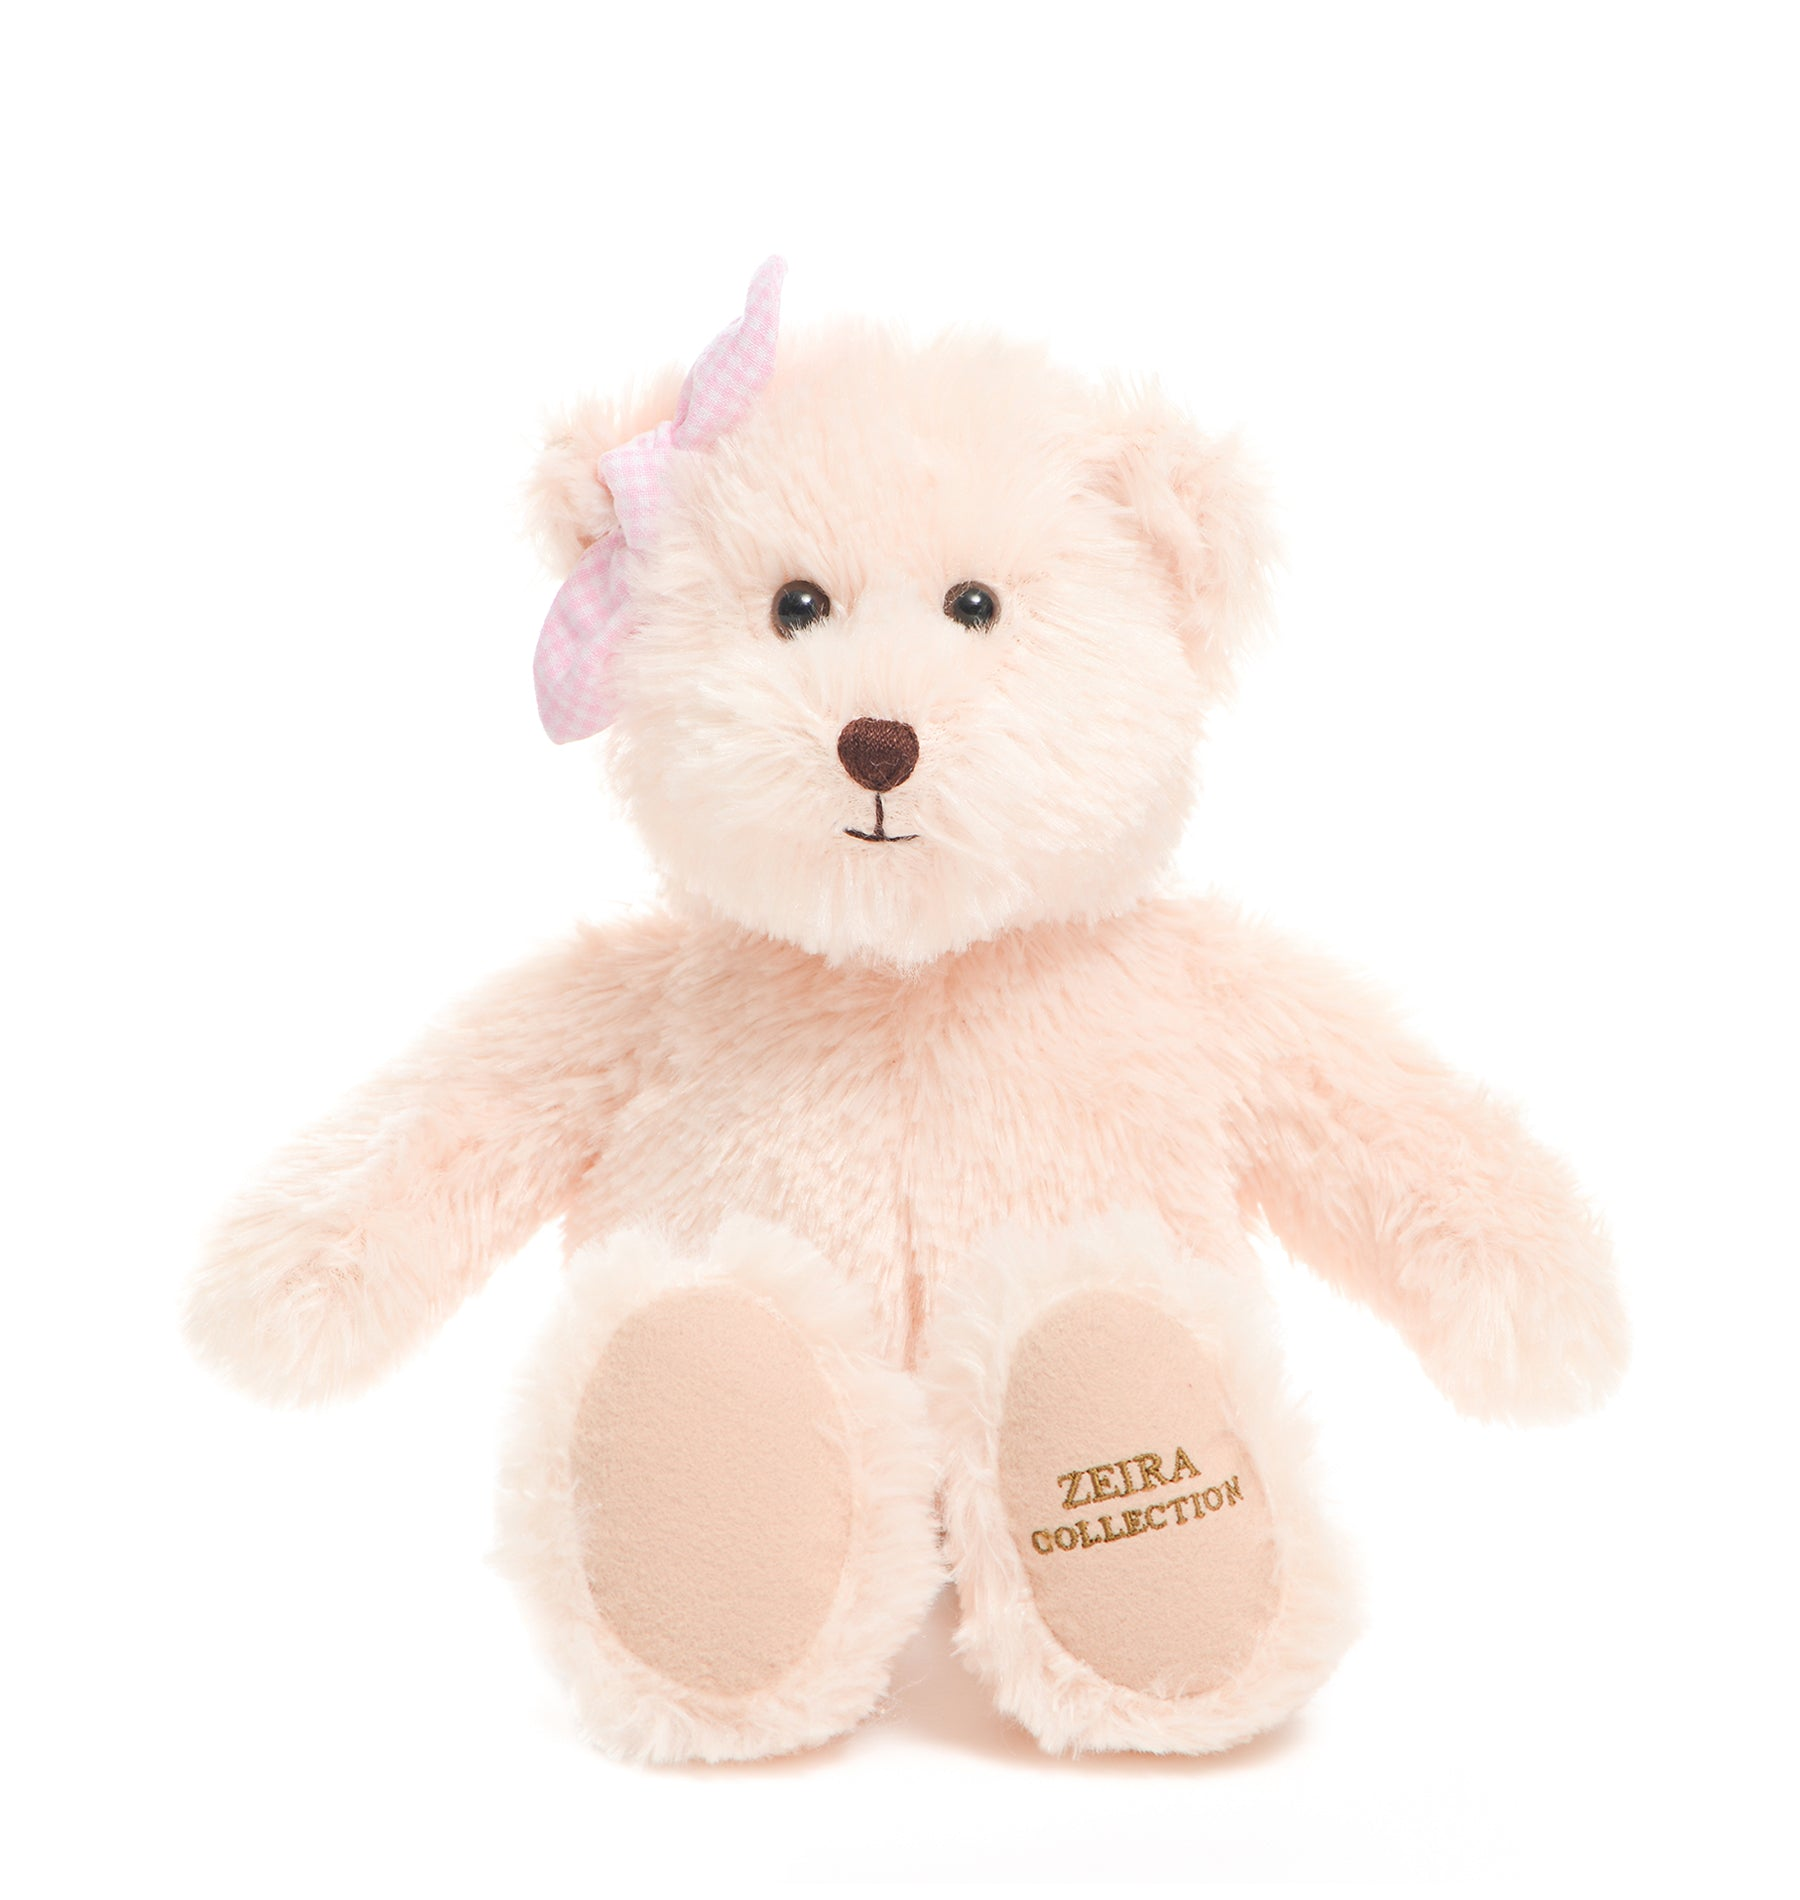 "TEDDY HOUSE BONEKA TEDDY BEAR ZEIRA BEAR 10"" JOINT"